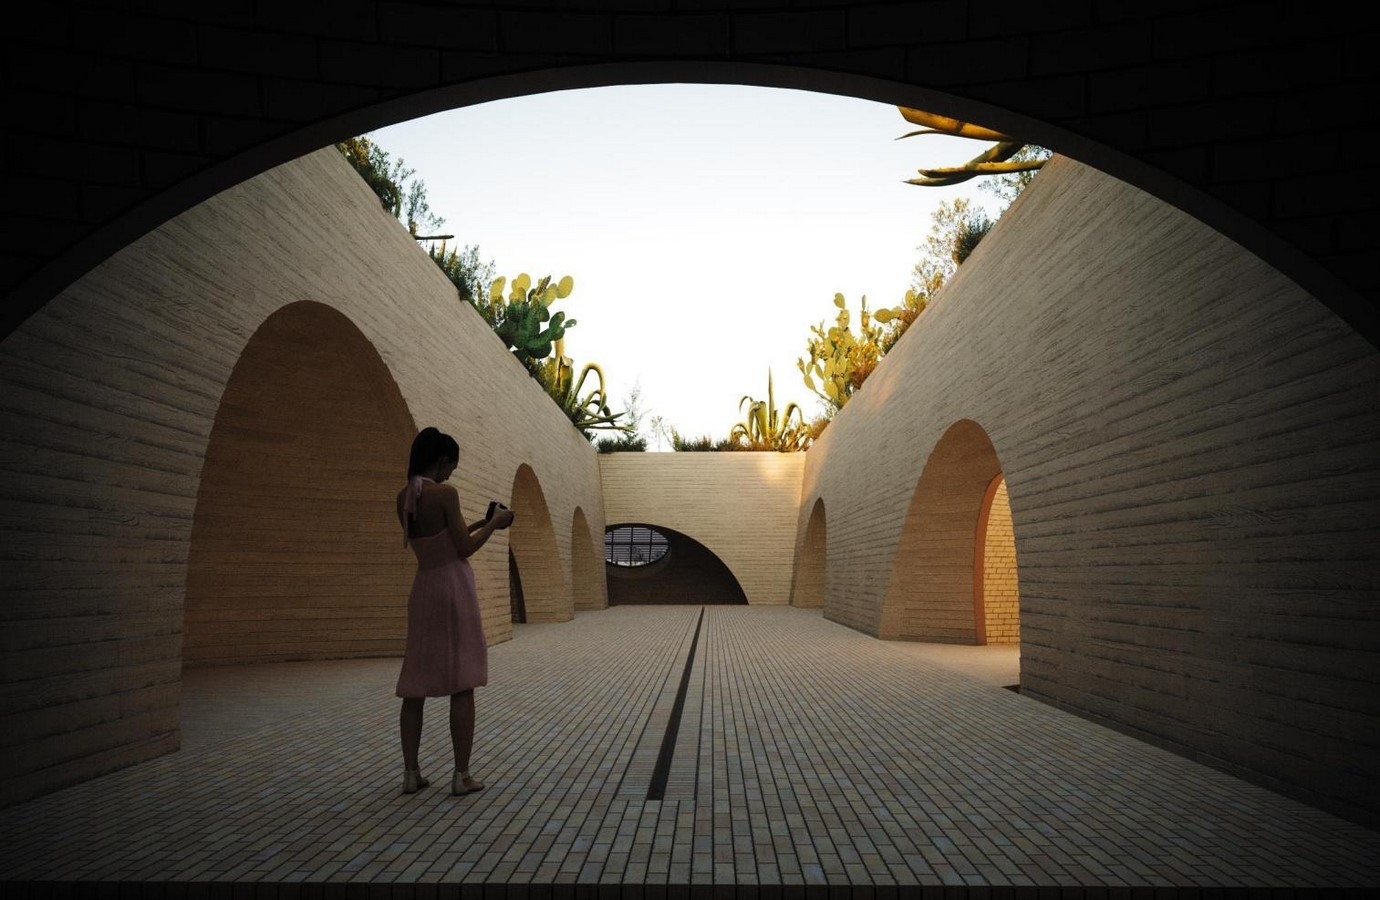 Ummara resort with 28 villas embedded in Mexican hills unveiled by Rojkind Arquitectos - Sheet6